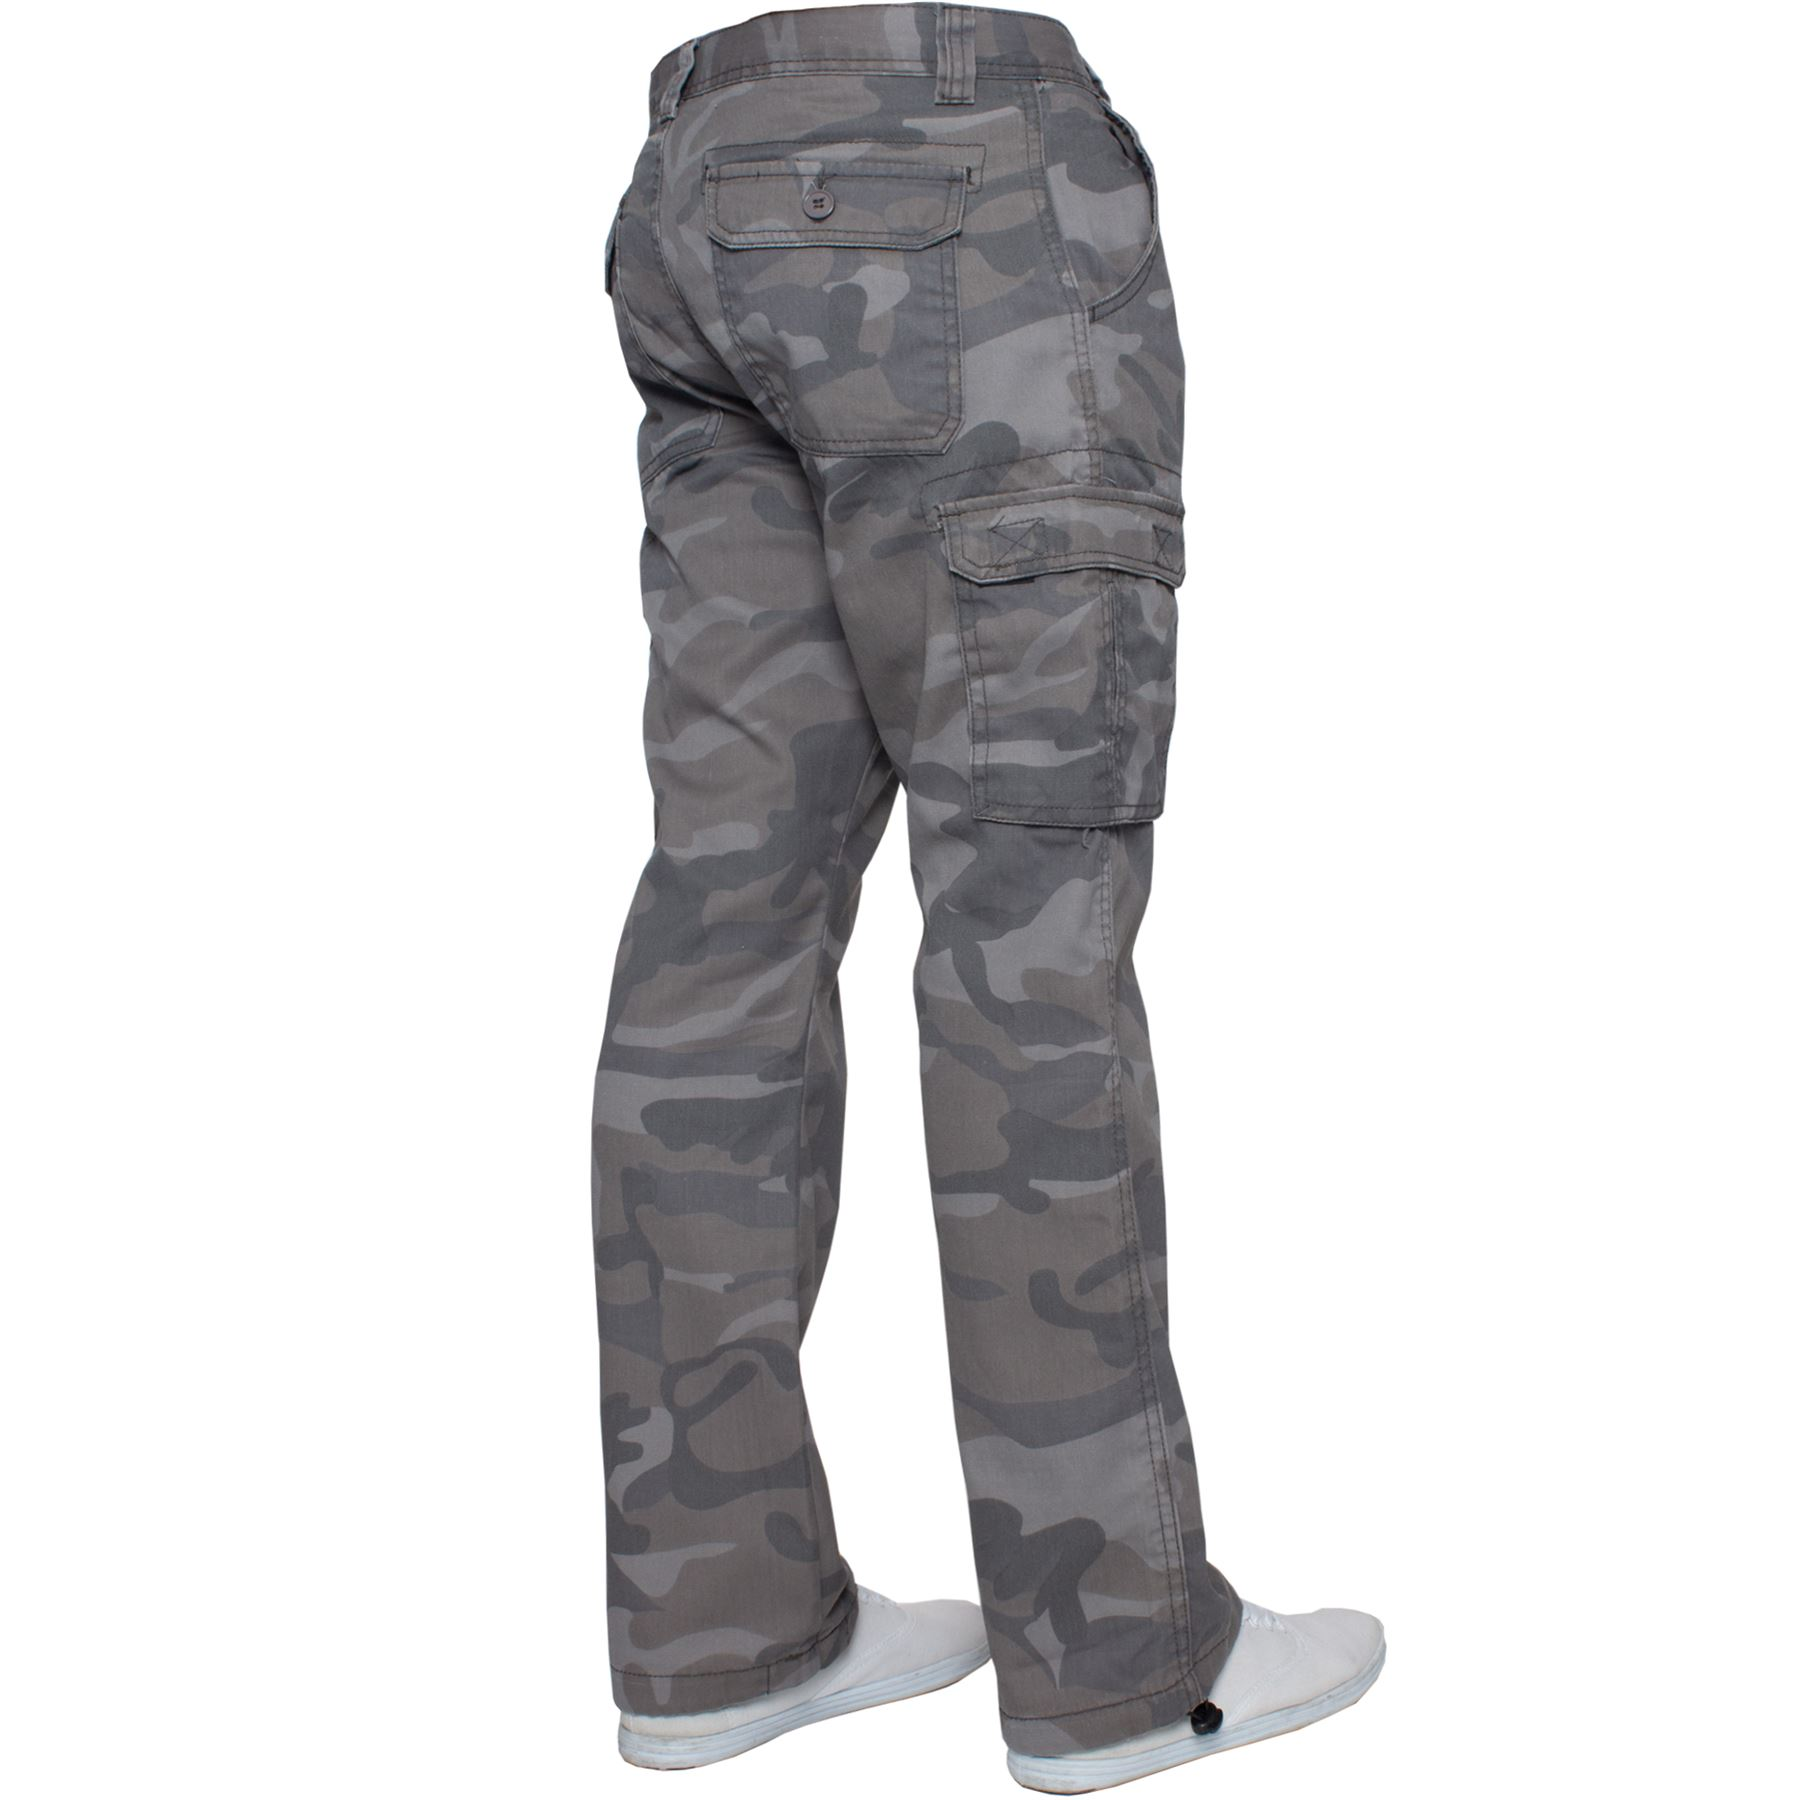 Kruze-Mens-Military-Combat-Trousers-Camouflage-Cargo-Camo-Army-Casual-Work-Pants thumbnail 10